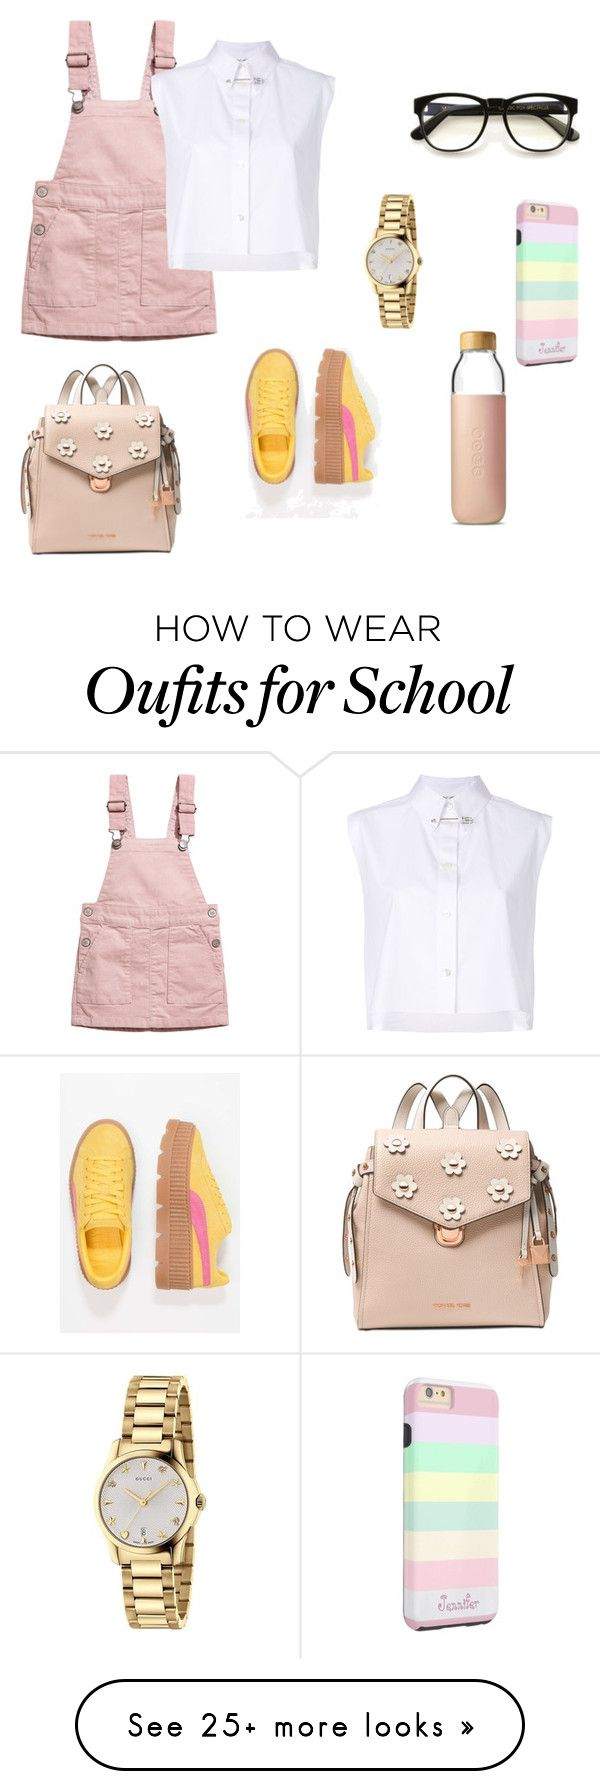 """too cool for school"" by dheazfra on Polyvore featuring H&M, Helmut Lang, Soma, Michael Kors, Wildfox, Gucci and Puma"